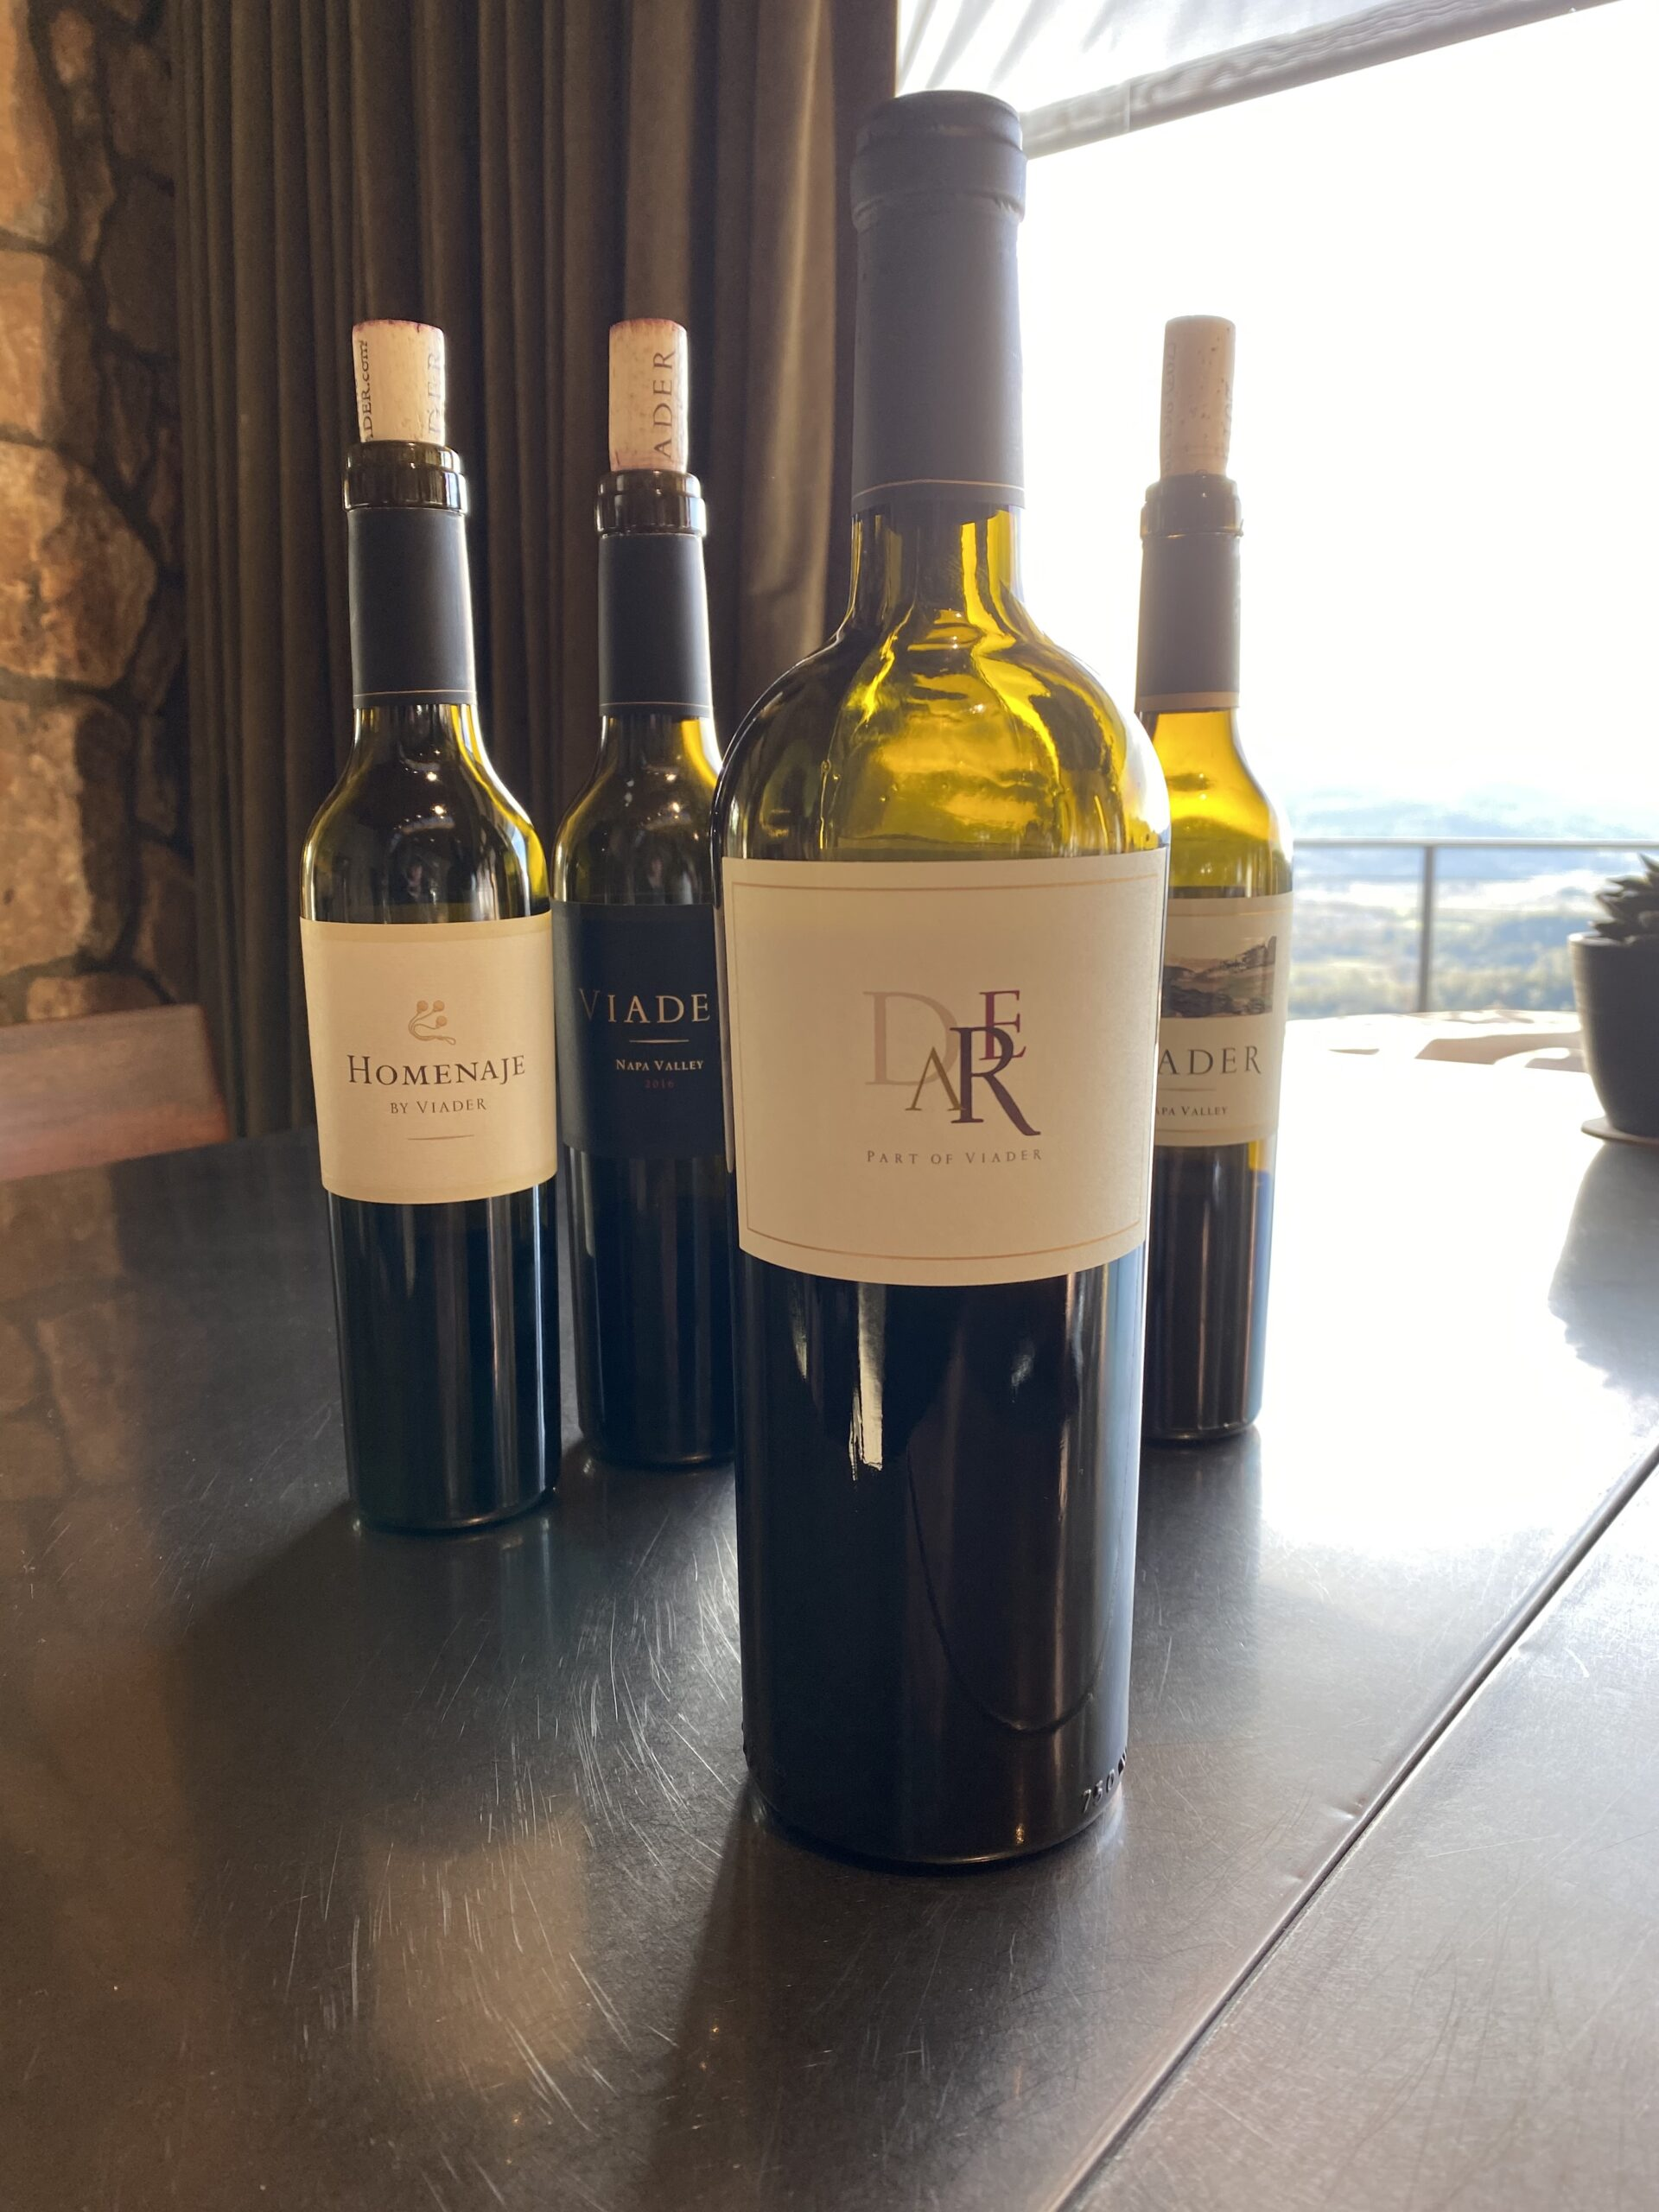 30 Wineries in 30 Days – Day 26: Viader